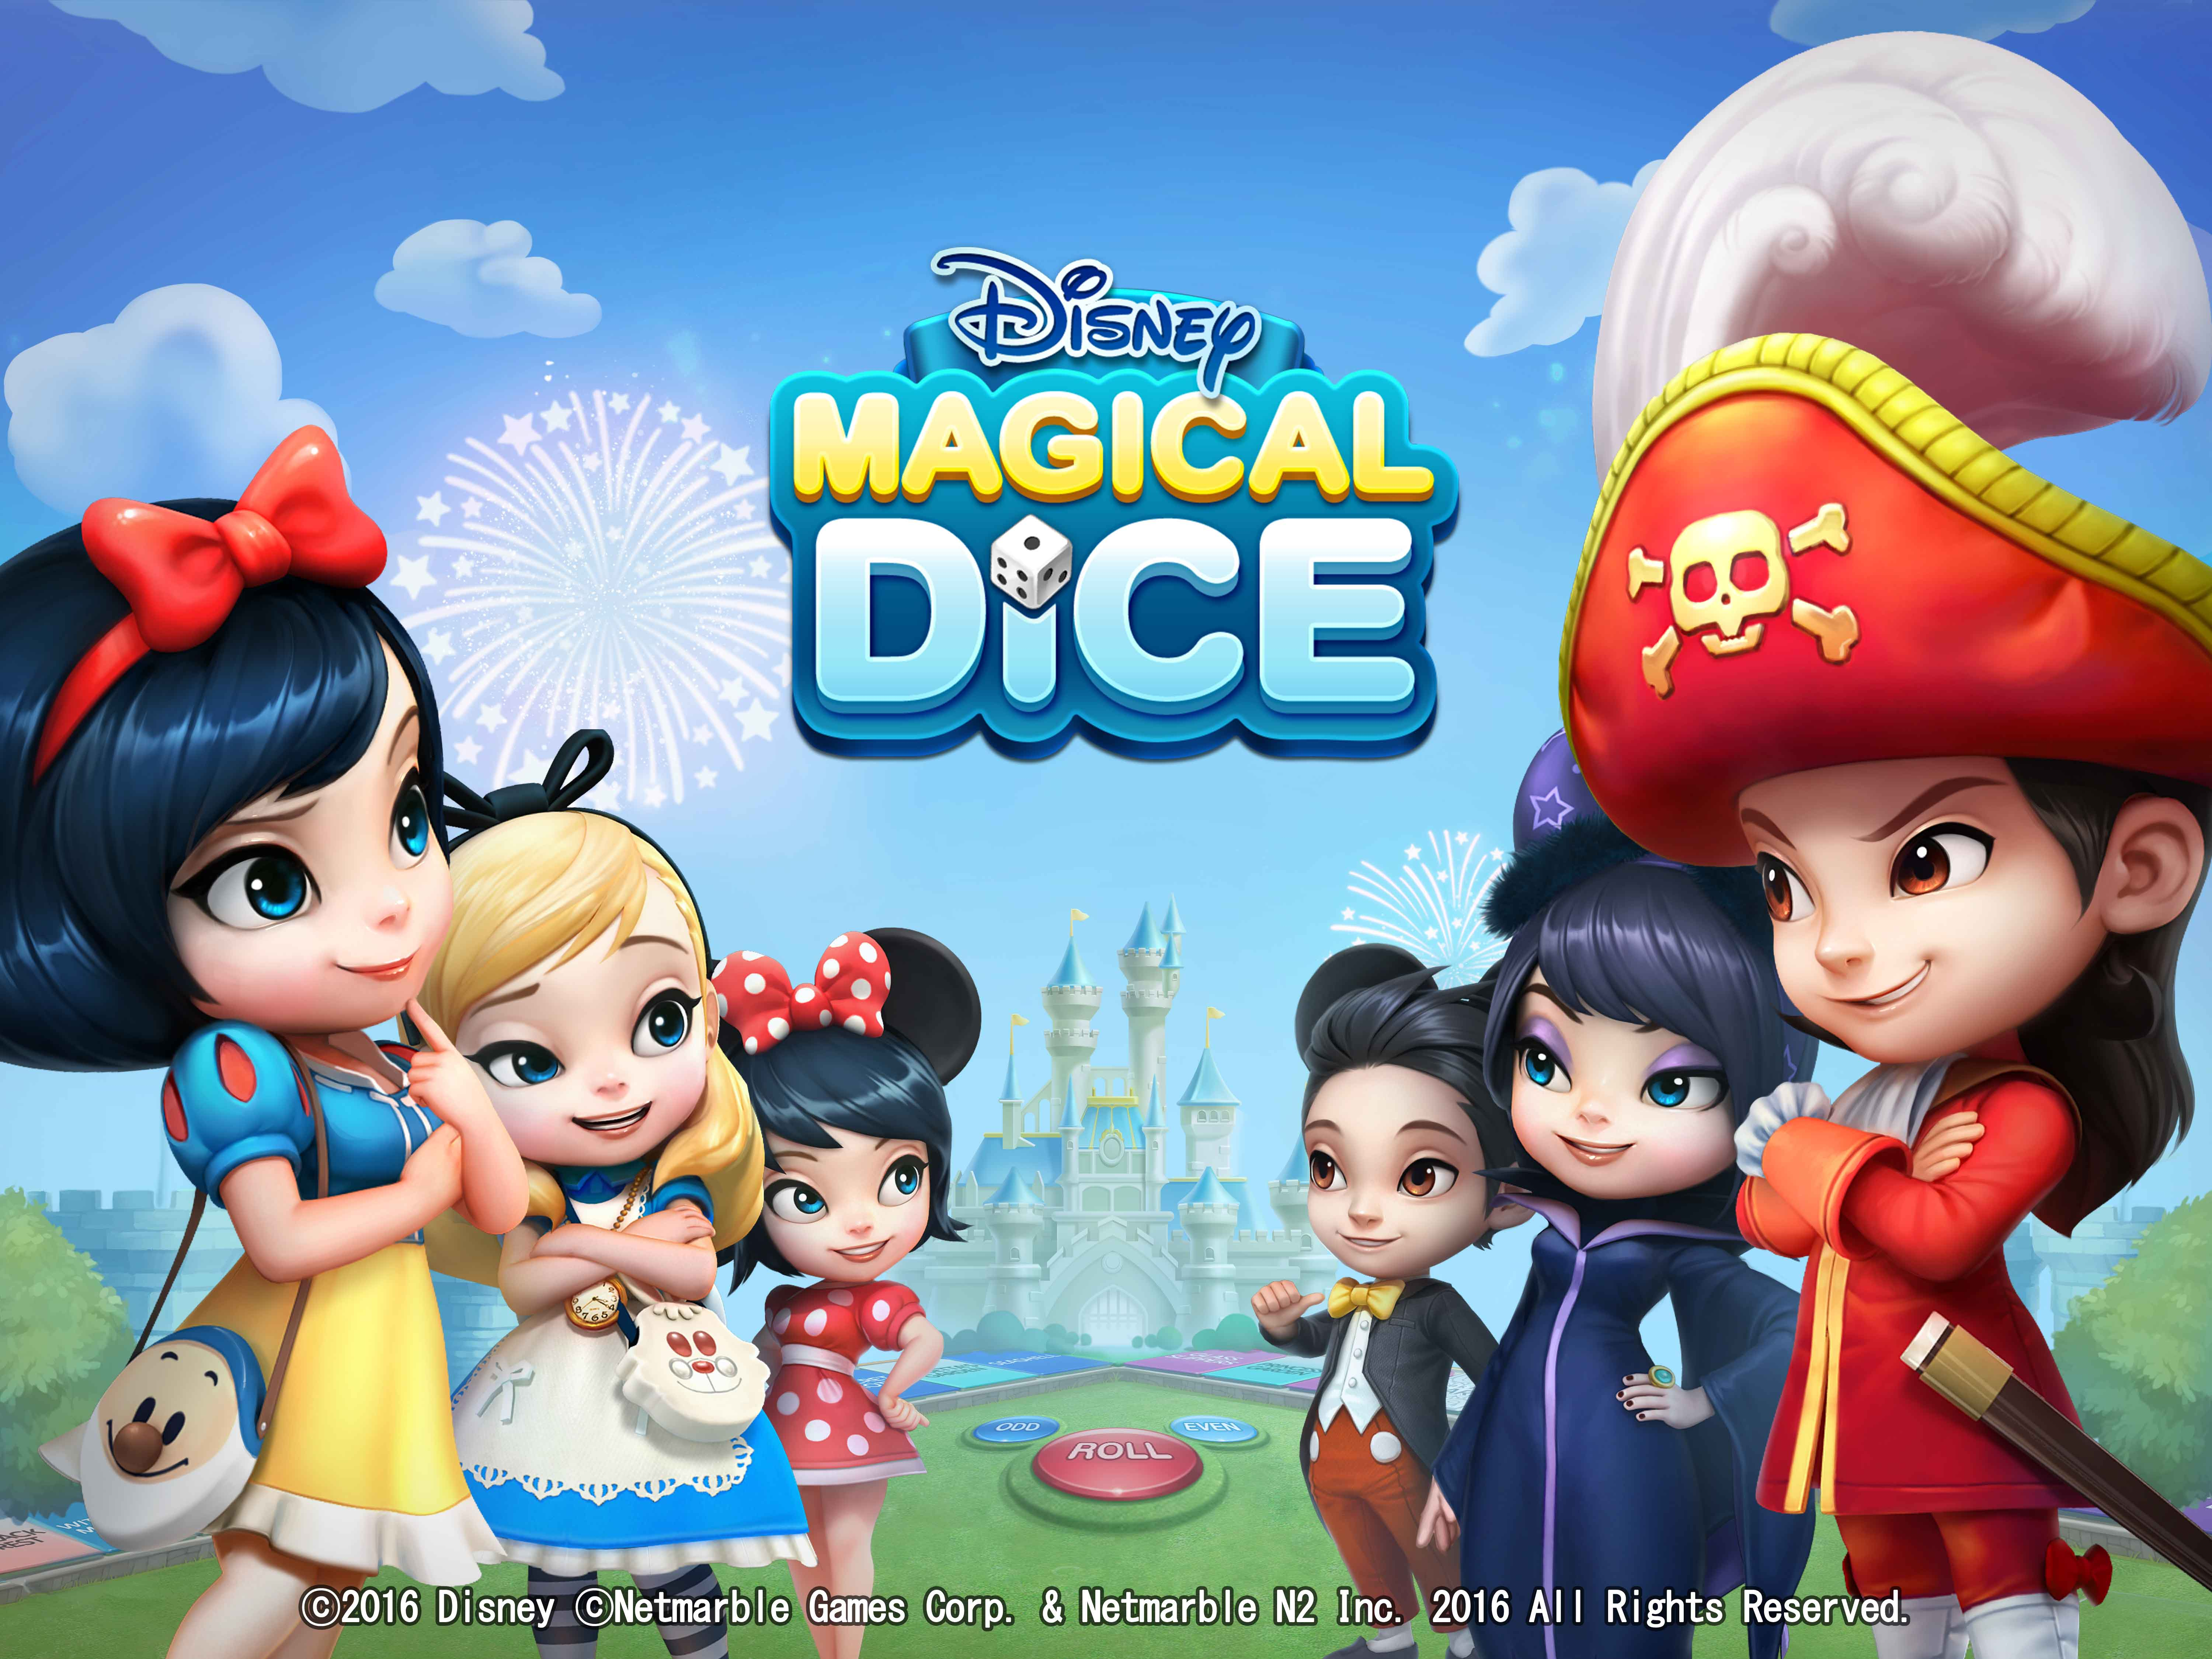 Disney Magical Dice Coming to Mobile Devices